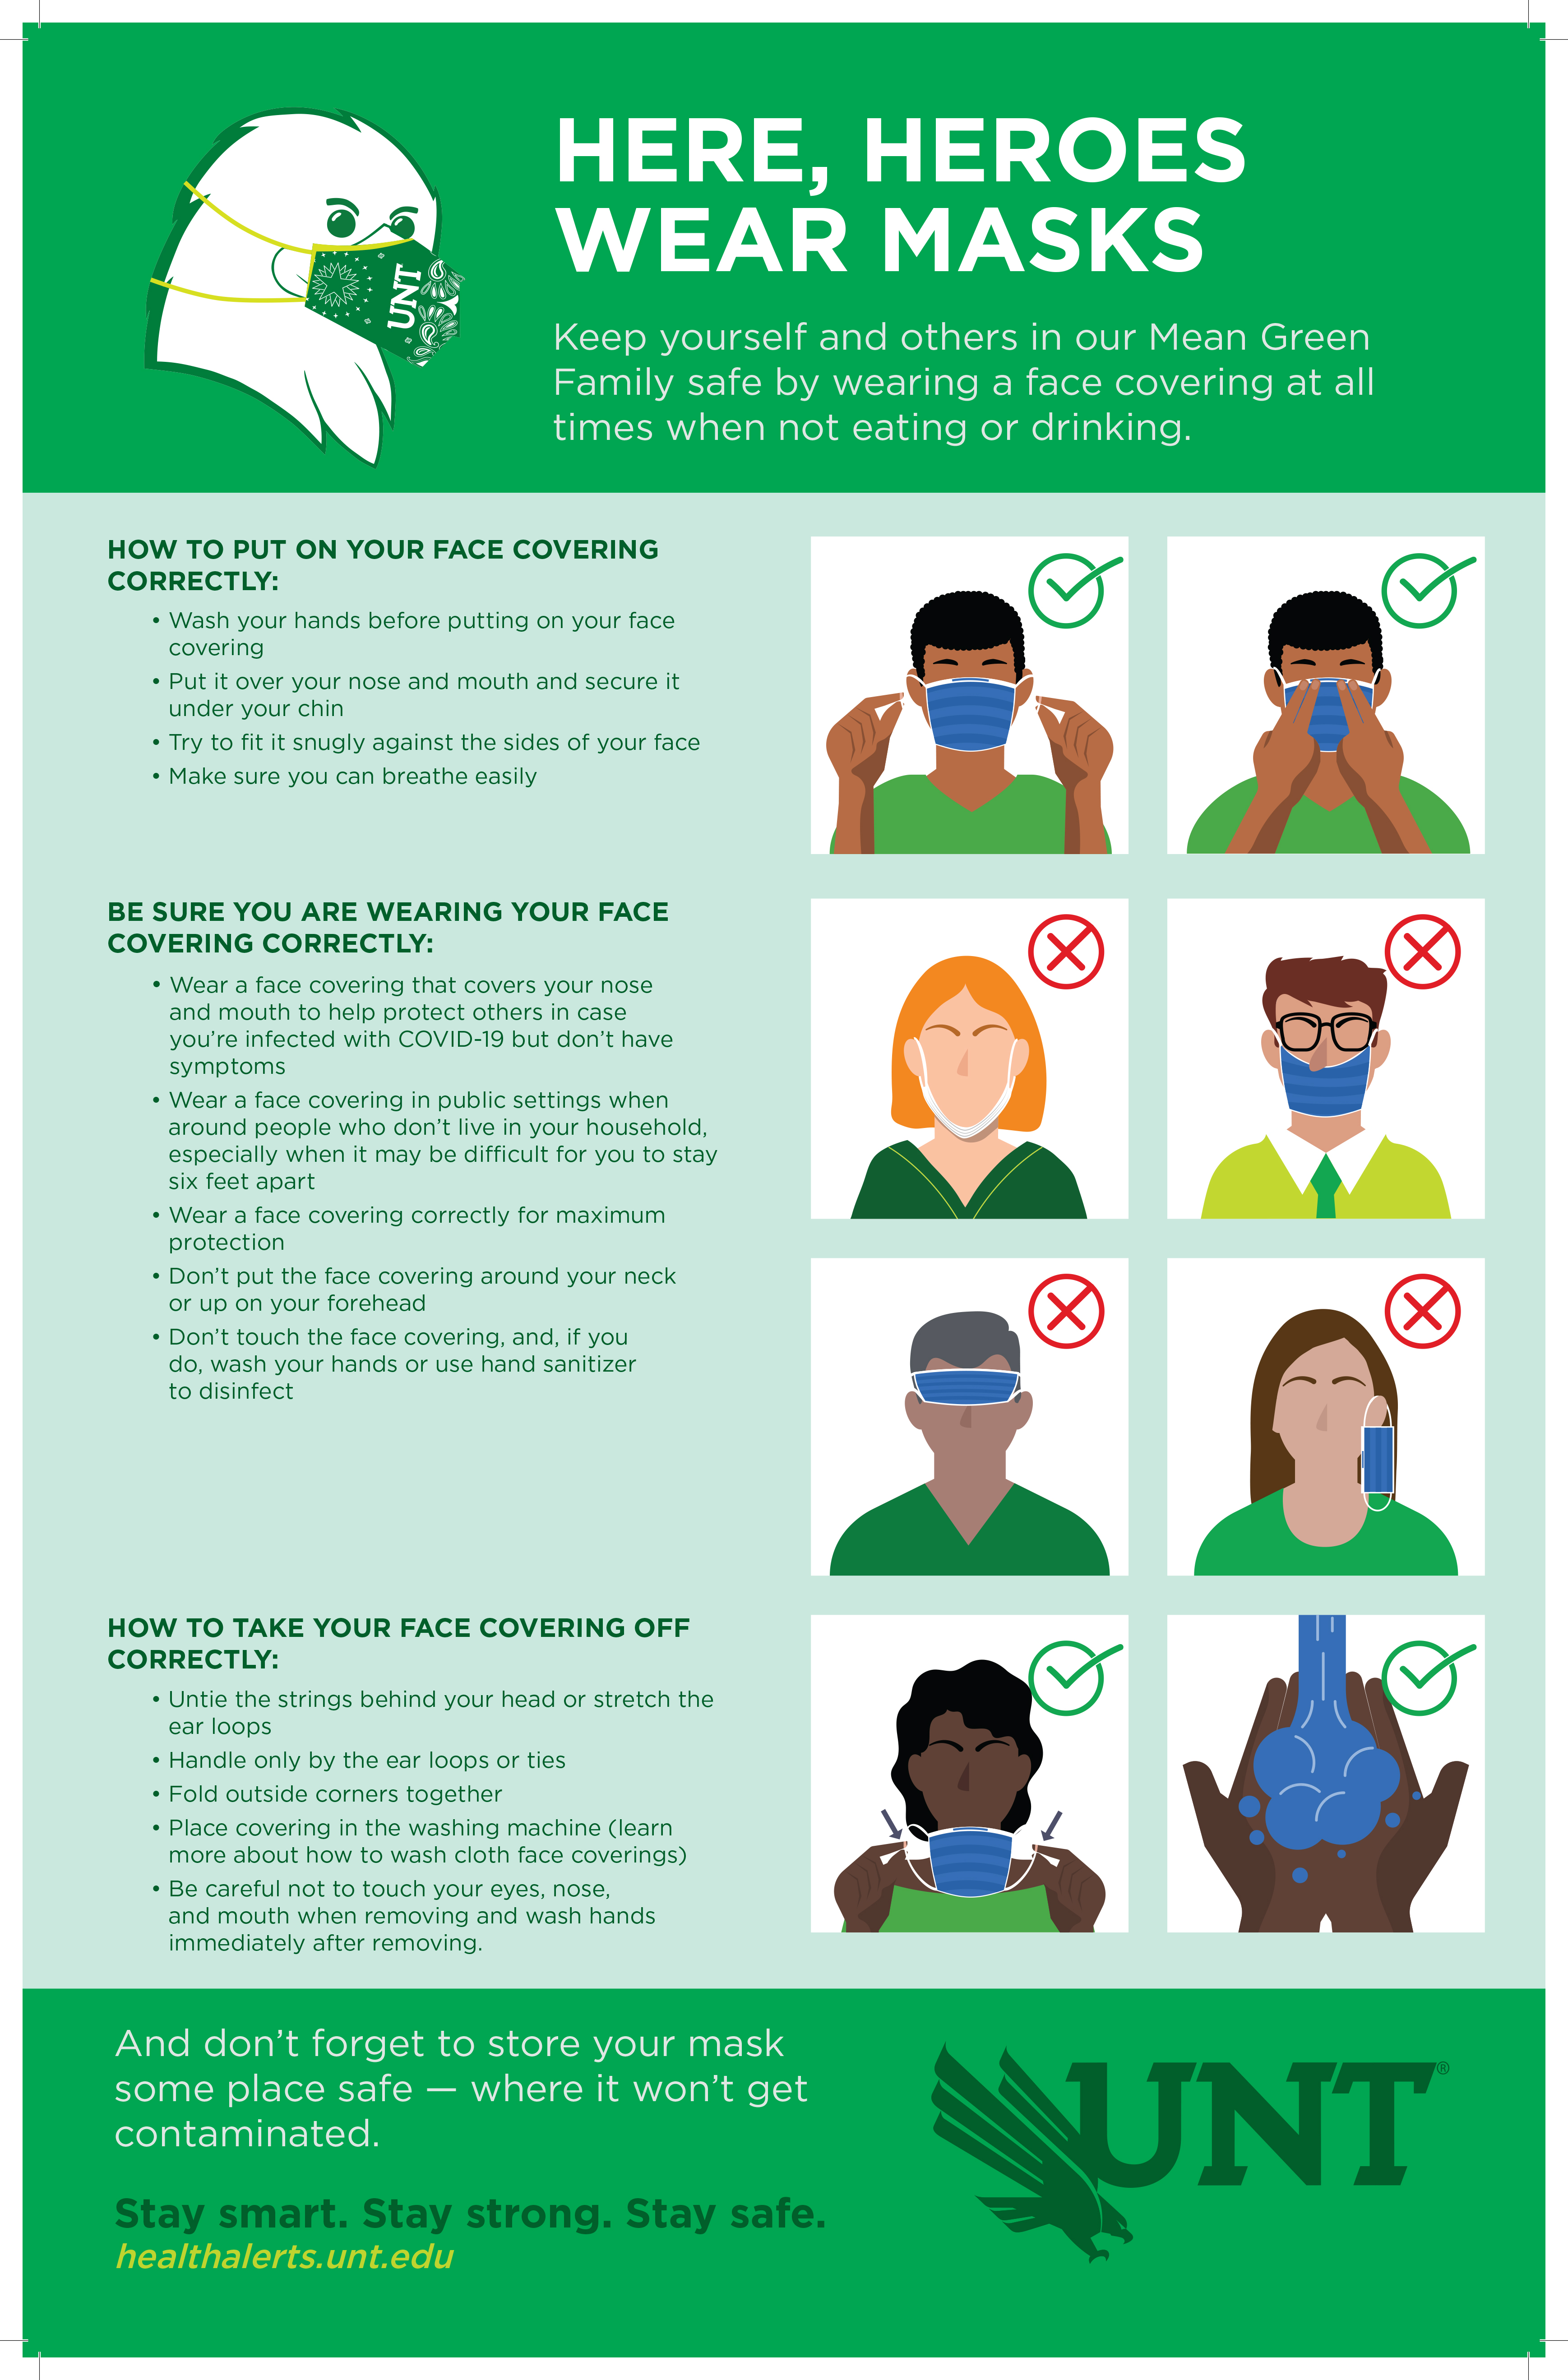 HERE, HEROES WEAR MASKS. Keep yourself and others in our Mean Green Family safe by wearing a face covering at all times when not eating or drinking. HOW TO PUT ON YOUR FACE COVERING CORRECTLY: Wash your hands before putting on your face covering. Put it over your nose and mouth and secure it under your chin. Try to fit it snugly against the sides of your face. Make sure you can breathe easily. BE SURE YOU ARE WEARING YOUR FACE COVERING CORRECTLY: Wear a face covering that covers your nose and mouth to help protect others in case you're infected with COVID-19 but don't have symptoms. Wear a face covering in public settings when around people who don't live in your household, especially when it may be difficult for you to stay six feet apart. Wear a face covering correctly for maximum protection. Don't put the face covering around your neck or up on your forehead. Don't touch the face covering, and, if you do, wash your hands or use hand sanitizer to disinfect. HOW TO TAKE YOUR FACE COVERING OFF CORRECTLY: Untie the strings behind your head or stretch the ear loops. Handle only by the ear loops or ties. Fold outside corners together. Place covering in the washing machine (learn more about how to wash cloth face coverings). Be careful not to touch your eyes, nose, and mouth when removing and wash hands immediately after removing. And don't forget to store your mask some place safe — where it won't get contaminated.